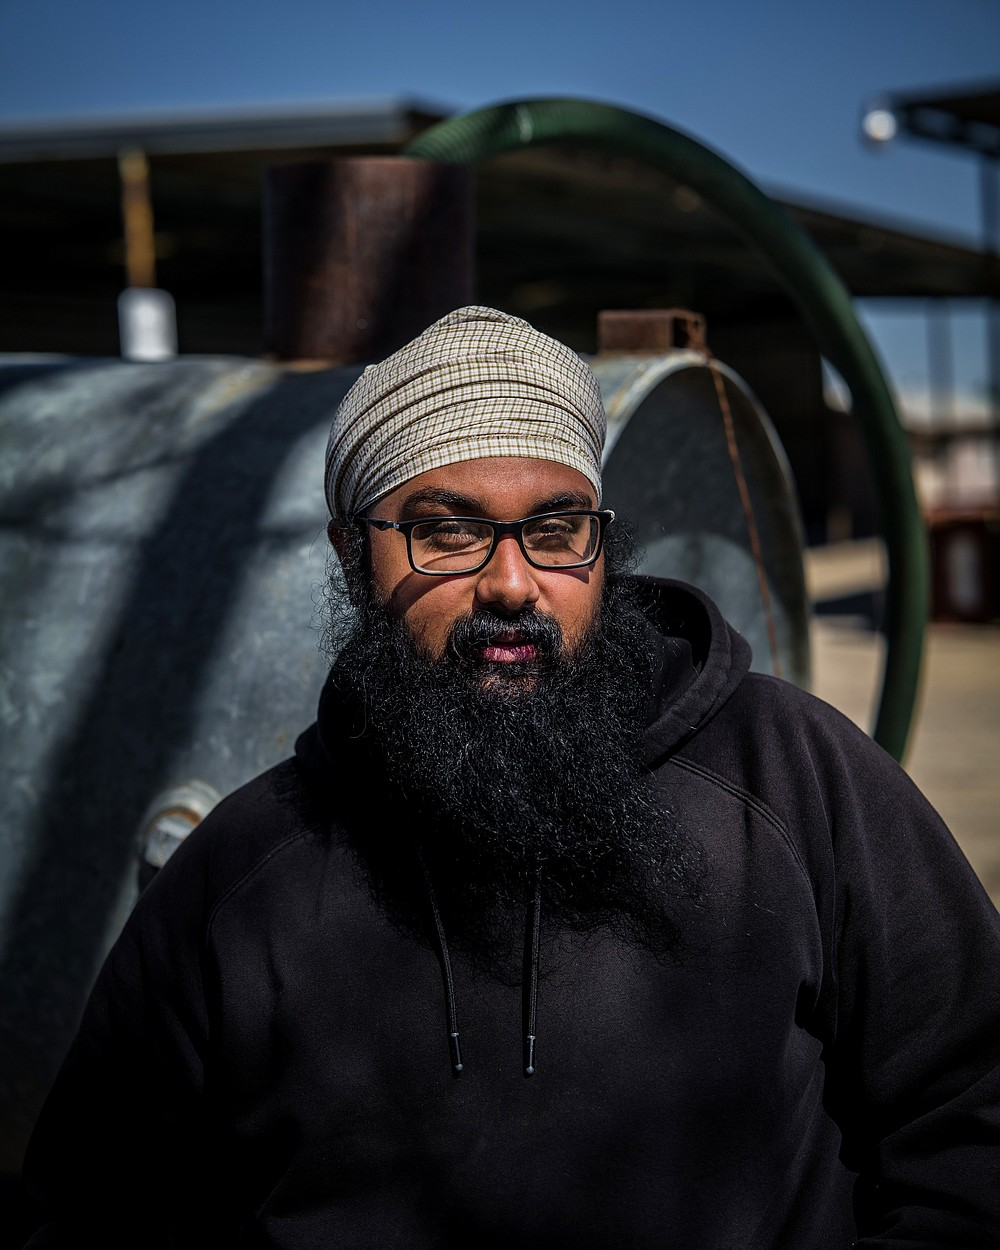 Simranjit Singh at the family farm in Kerman, Calif. where his family grows a raisins and almonds, March 23, 2021. In California, a young generation of Sikh farmers has agricultural roots that stretch back 900 years. (Ryan Christopher Jones/The New York Times)